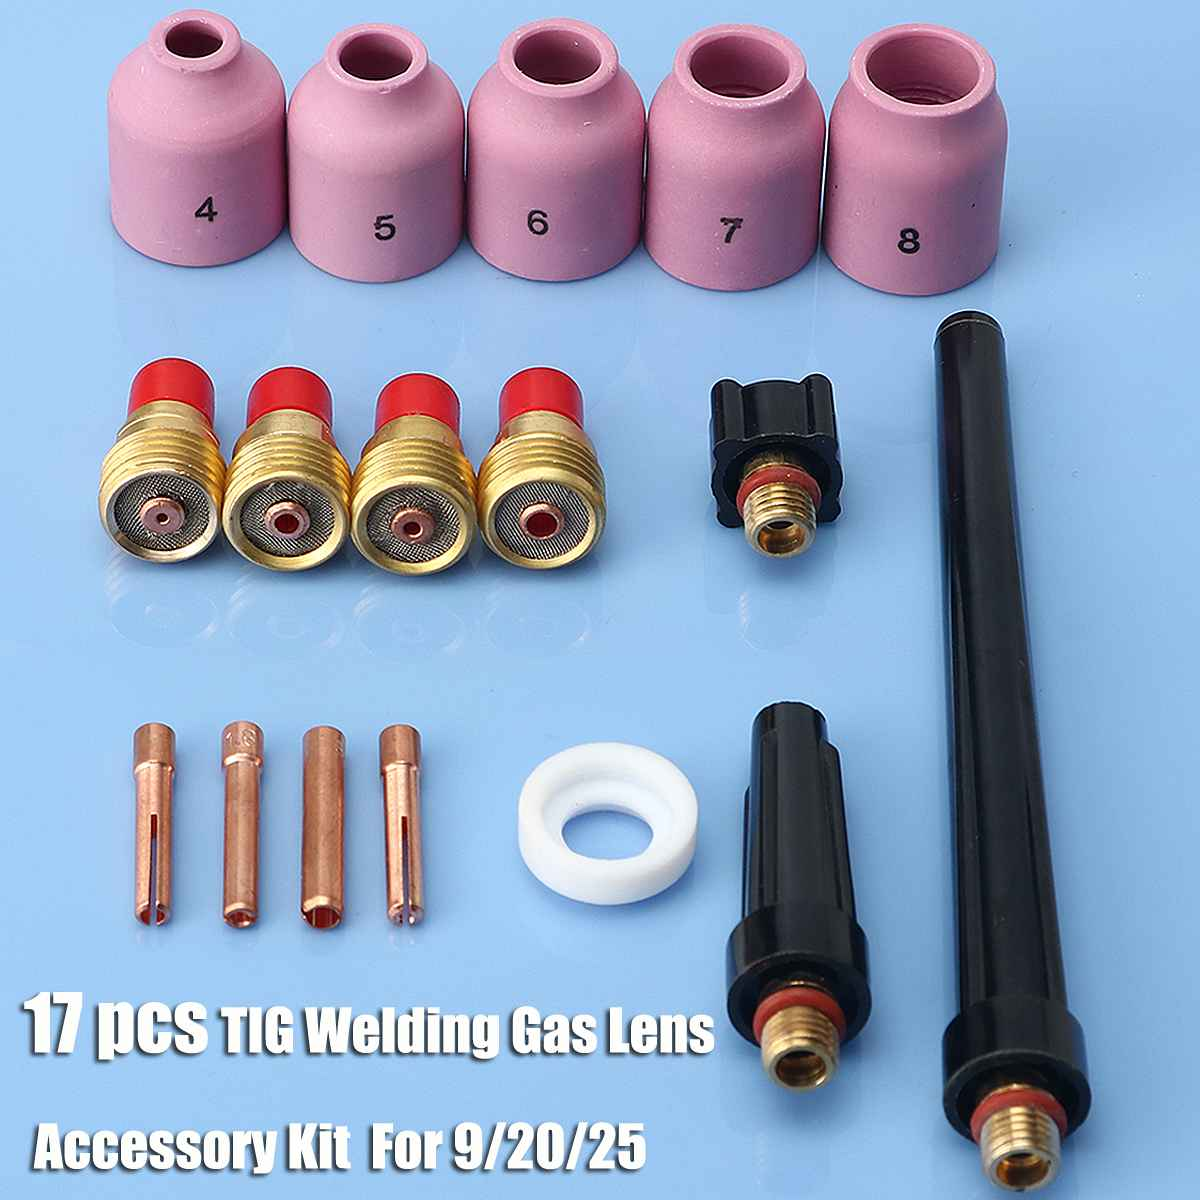 Hot Sale 17 Pcs TIG Welding Torch Gas Lens Accessory Full Kit Set For WP9/20/25 Series 0.040